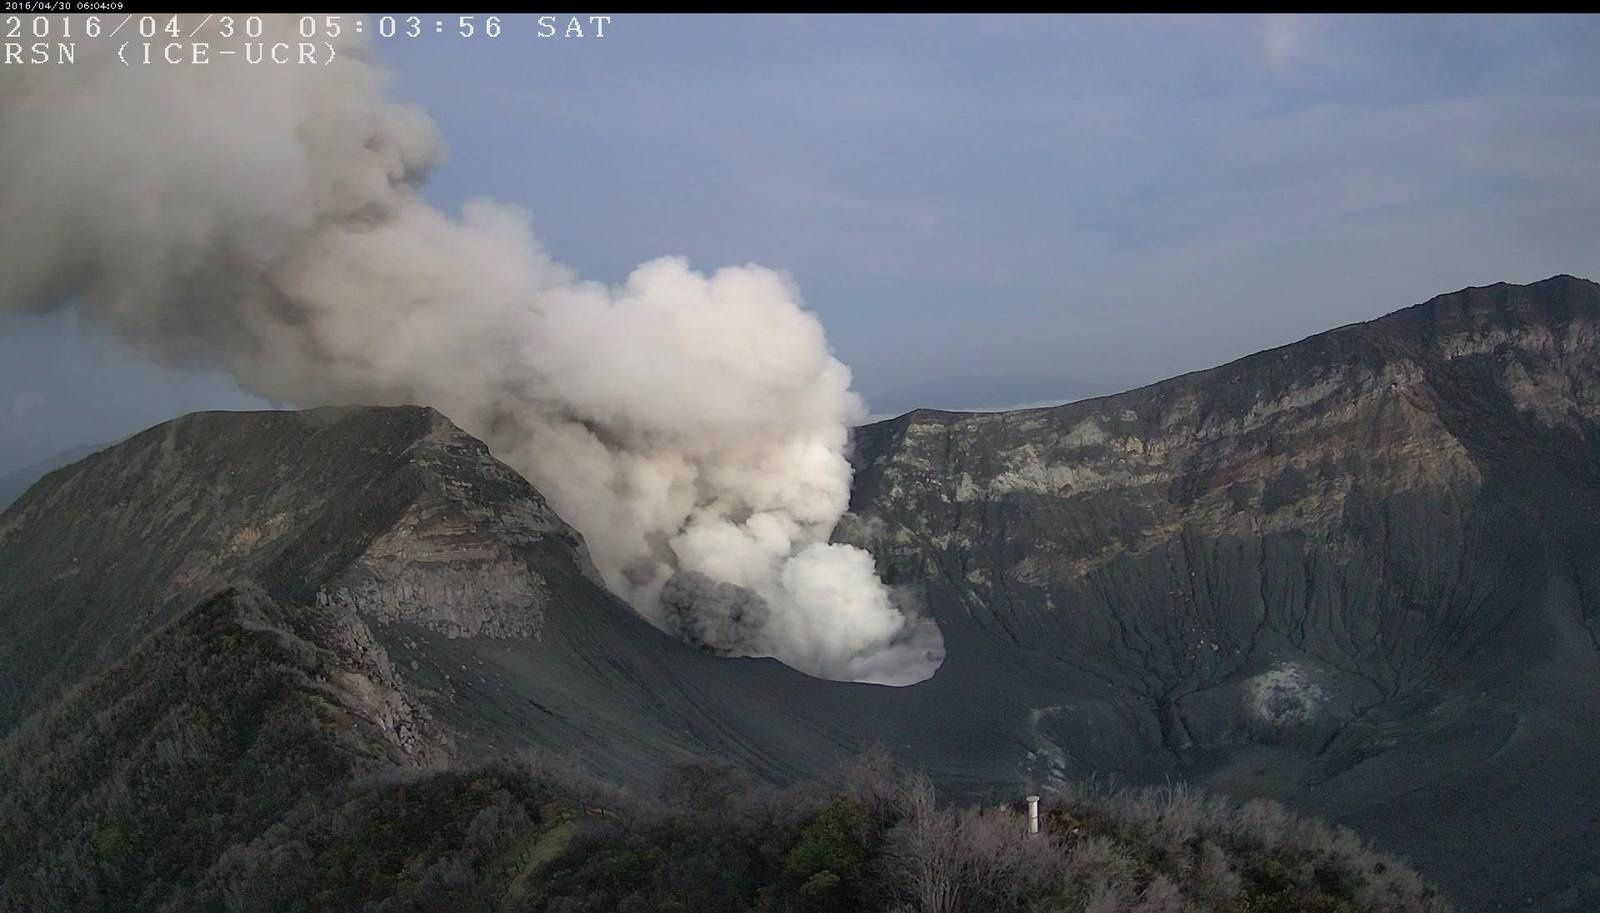 Turrialba - émissions du 30.04.2016 / 5h03 - webcam RSN